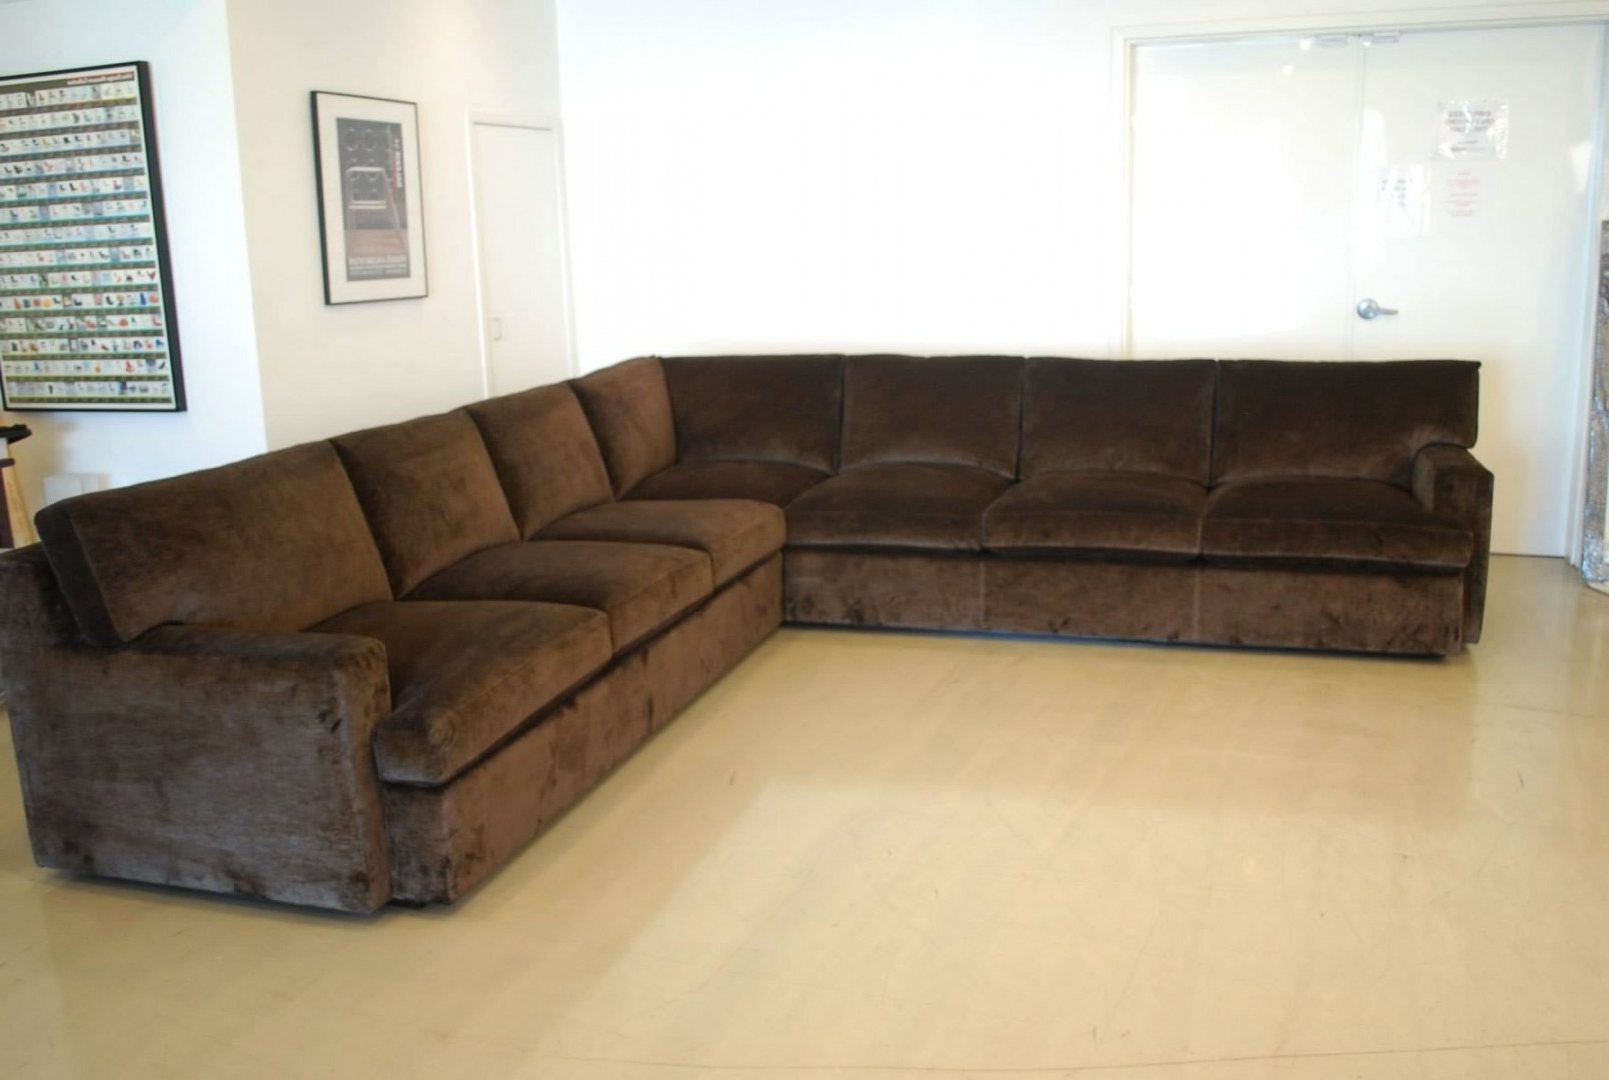 Customizable Sectional Sofas With 2018 Sectional Sofa Design: Custom Sectional Sofas Recliners Small (View 5 of 15)